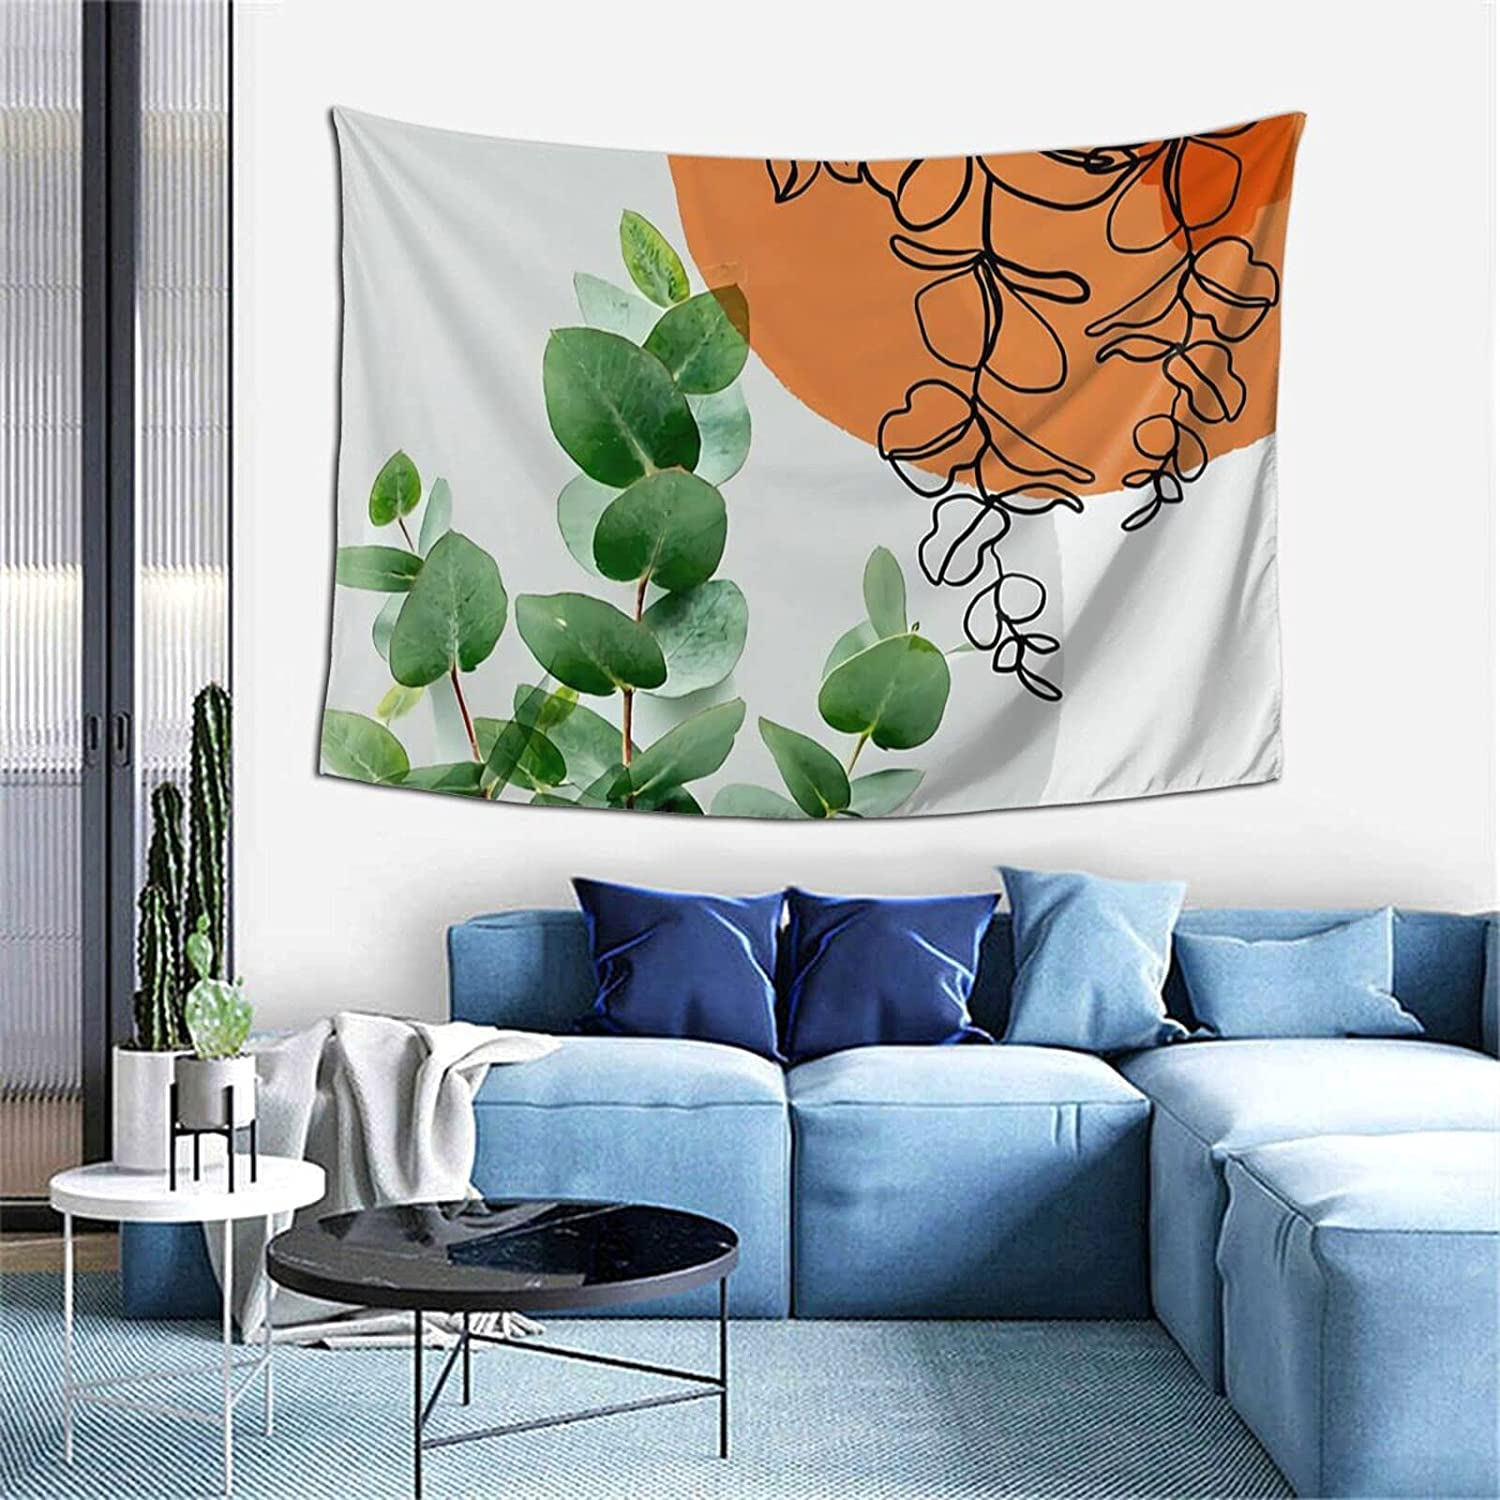 Shenghengyu Simpatico Home Tapesrty For Bedroom And Livingroom Tapestries Bespoke Size Order Wall Hanging 60*40inch